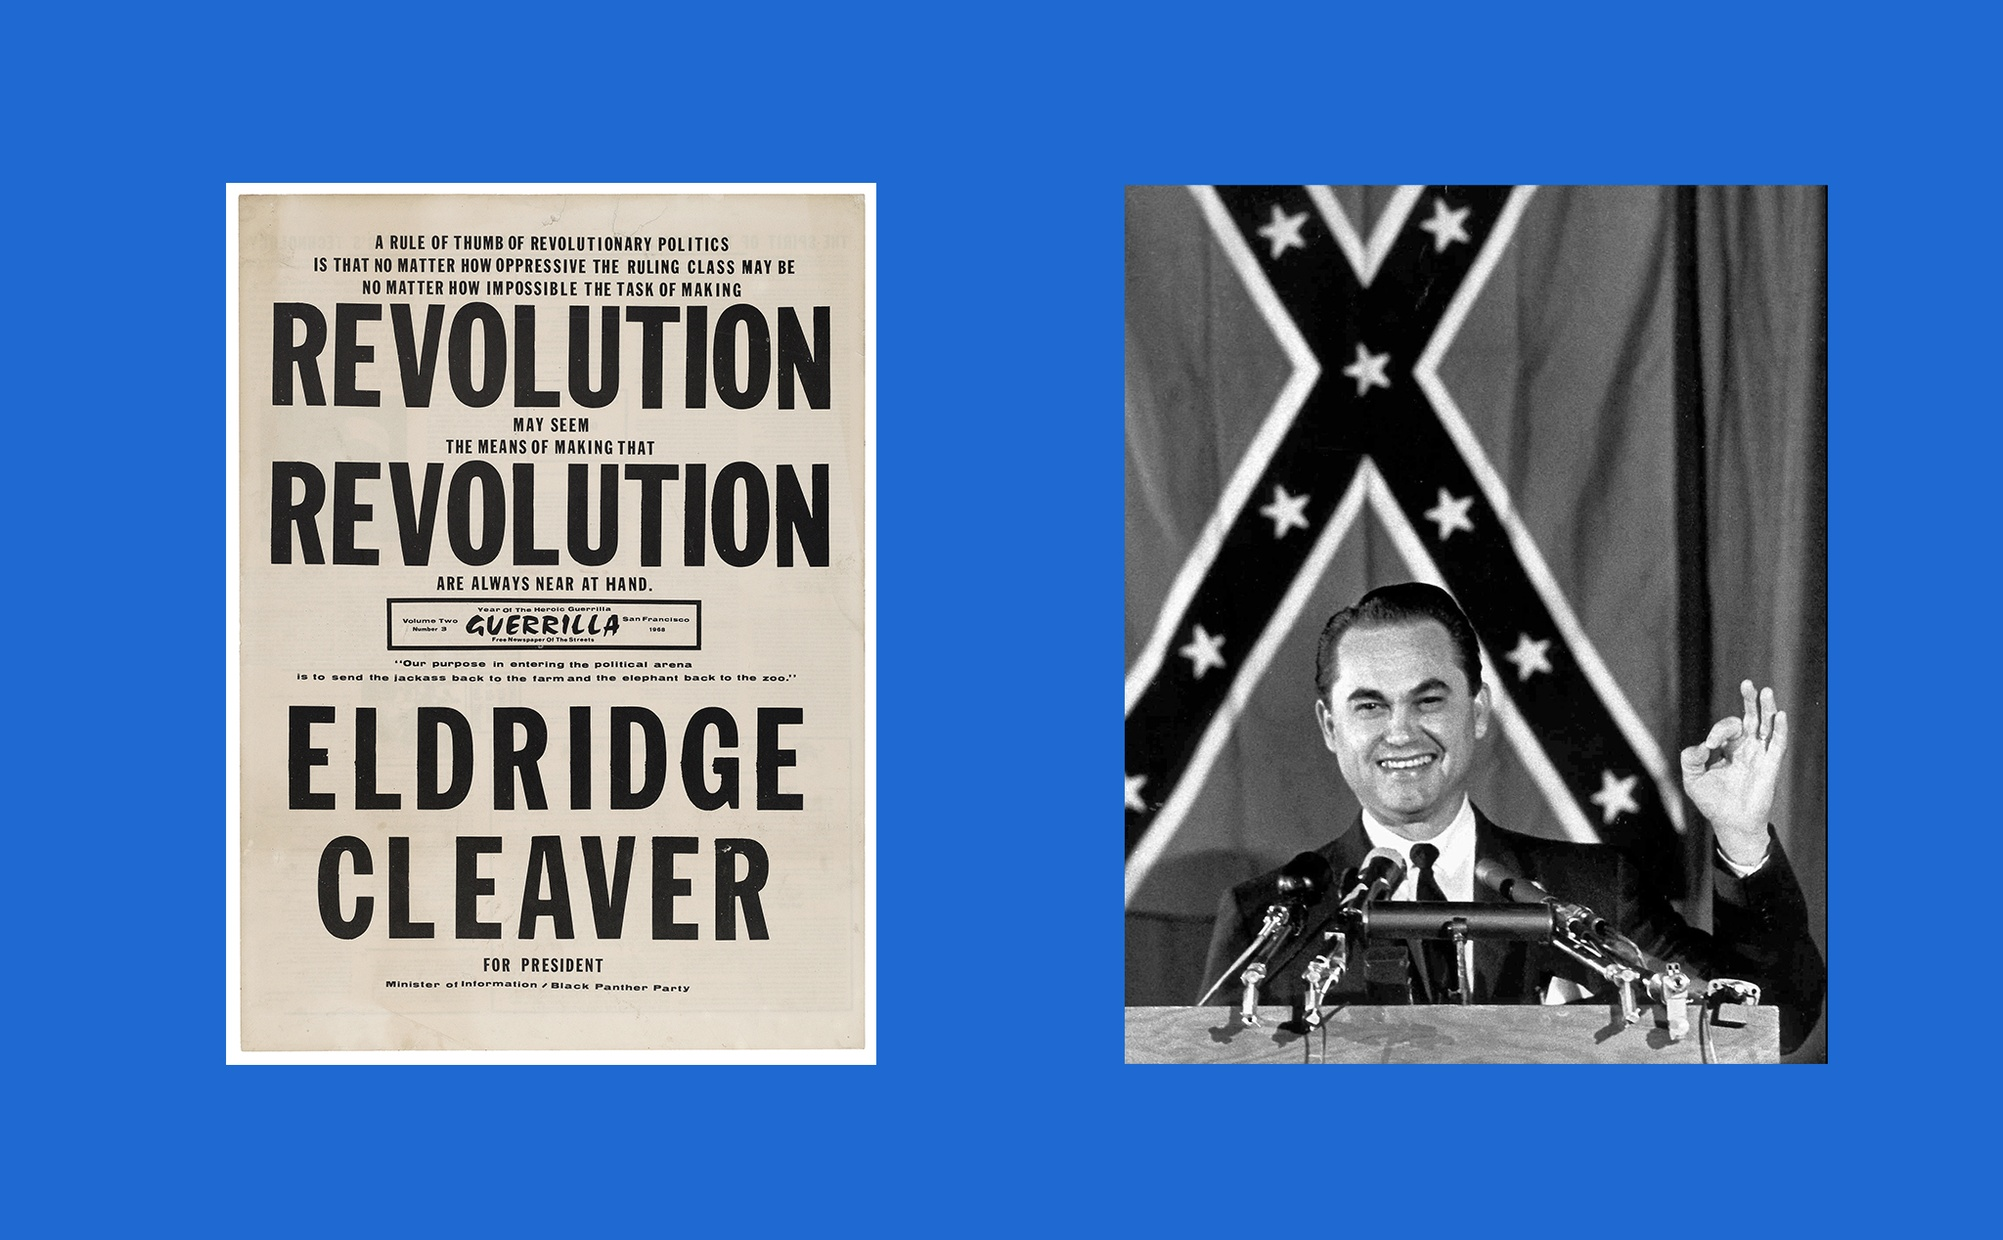 """Two images side-by-side, one image is a black and white campaign poster with big and small text that reads """"A RULE OF THUMB OF REVOLUTIONARY POLITICS IS THAT NO MATTER HOW OPPRESSIVE THE RULLING CLASS MAY BE NO MATTER HOW IMPOSSIBLE THE TASK OF MAKING REVOLUTION MAY SEEM THE MEANS OF MAKING THAT REVOLUTION ARE ALWAYS NEAR AT HAND. ELDRIDGE CLEAVER FOR PRESIDENT Minister of information / Black Panther Party"""" and the other image is a black and white photograph of a light-skinned man at a podium in front of a confederate flag."""